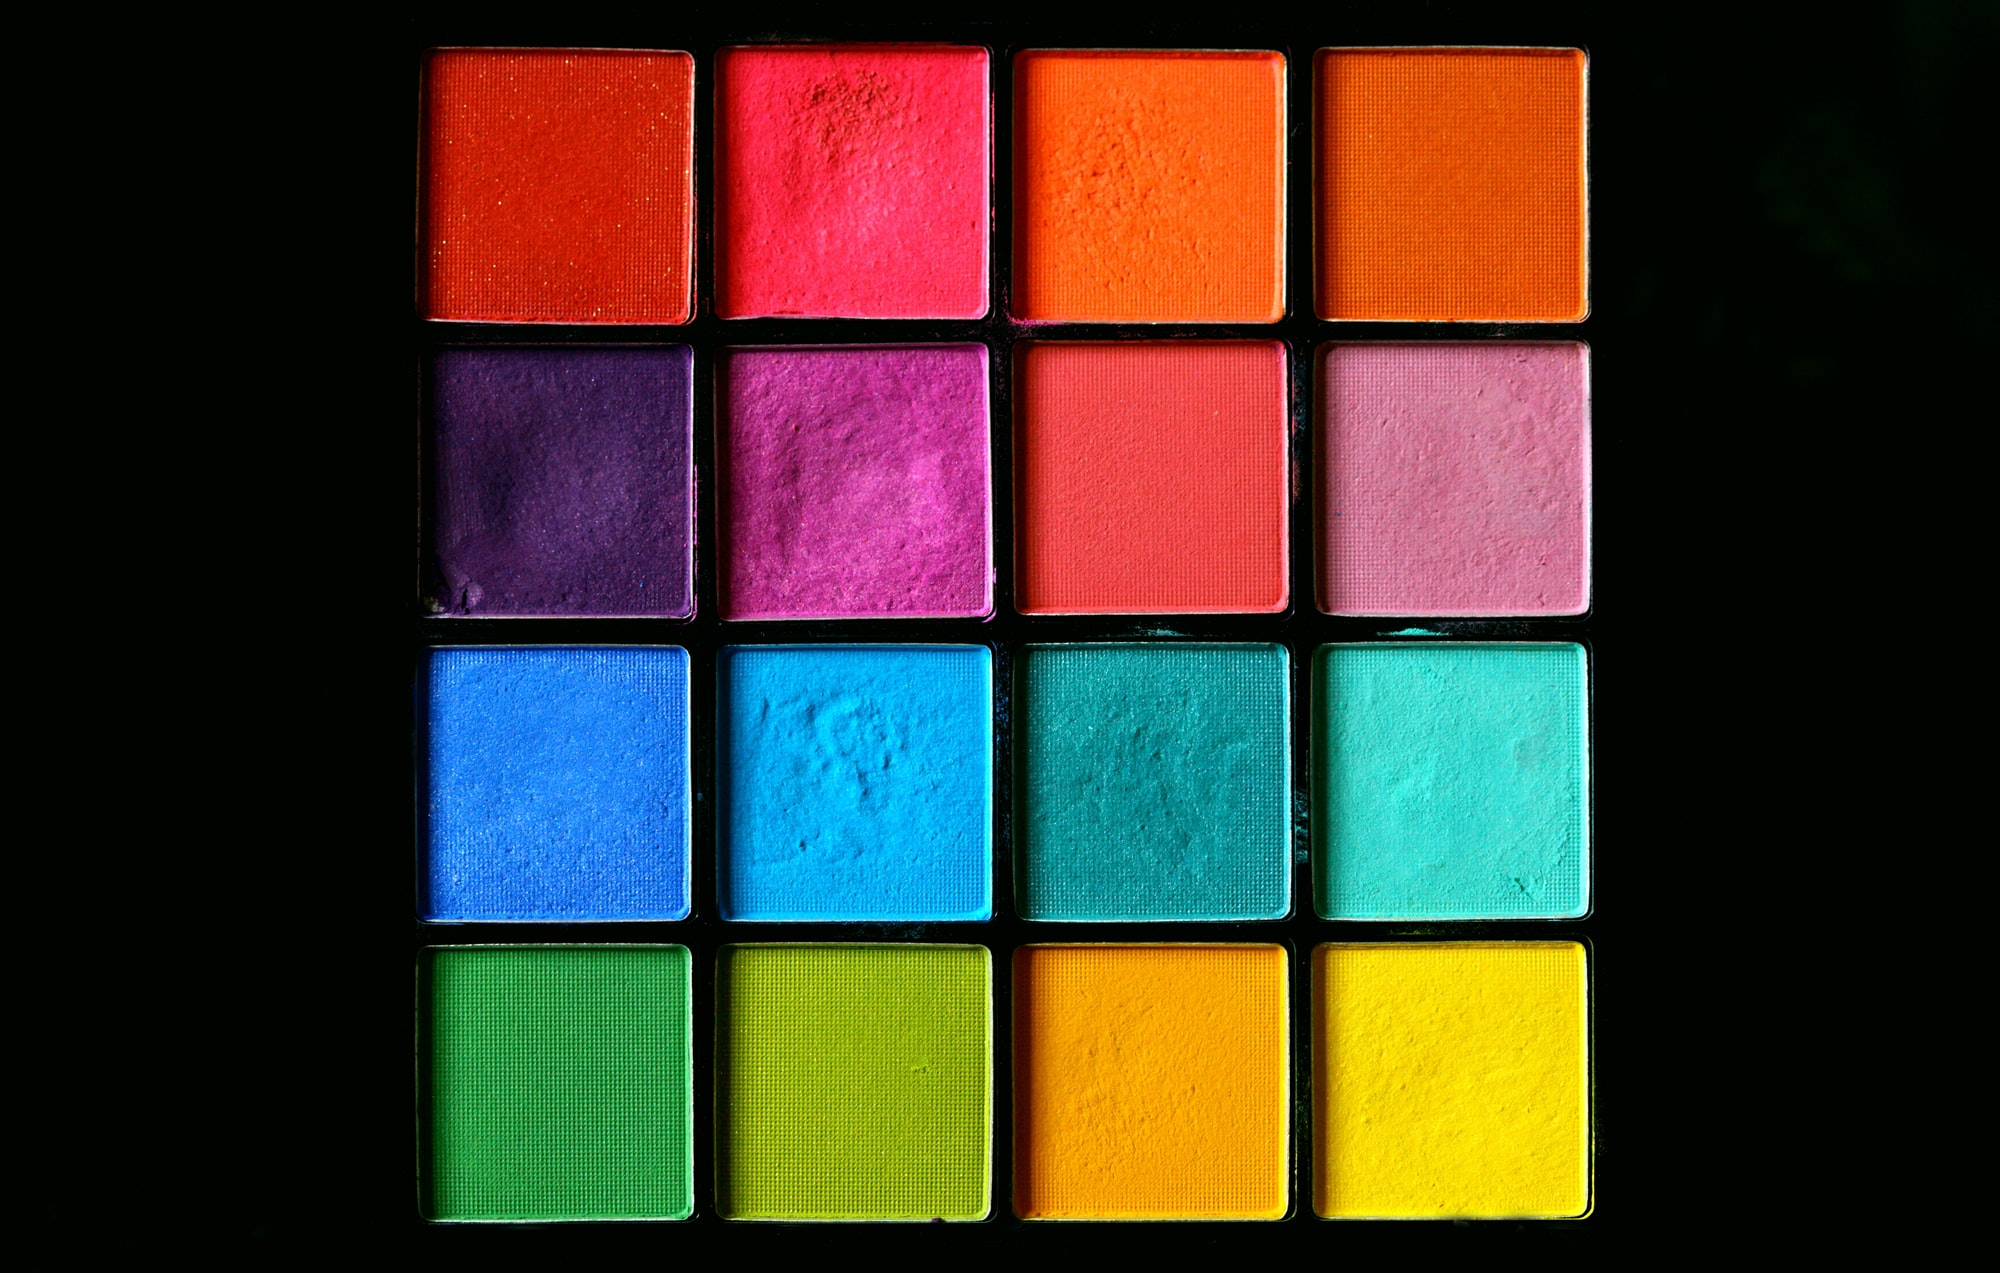 Rainbow pressed powder eye shadow make-up palette.